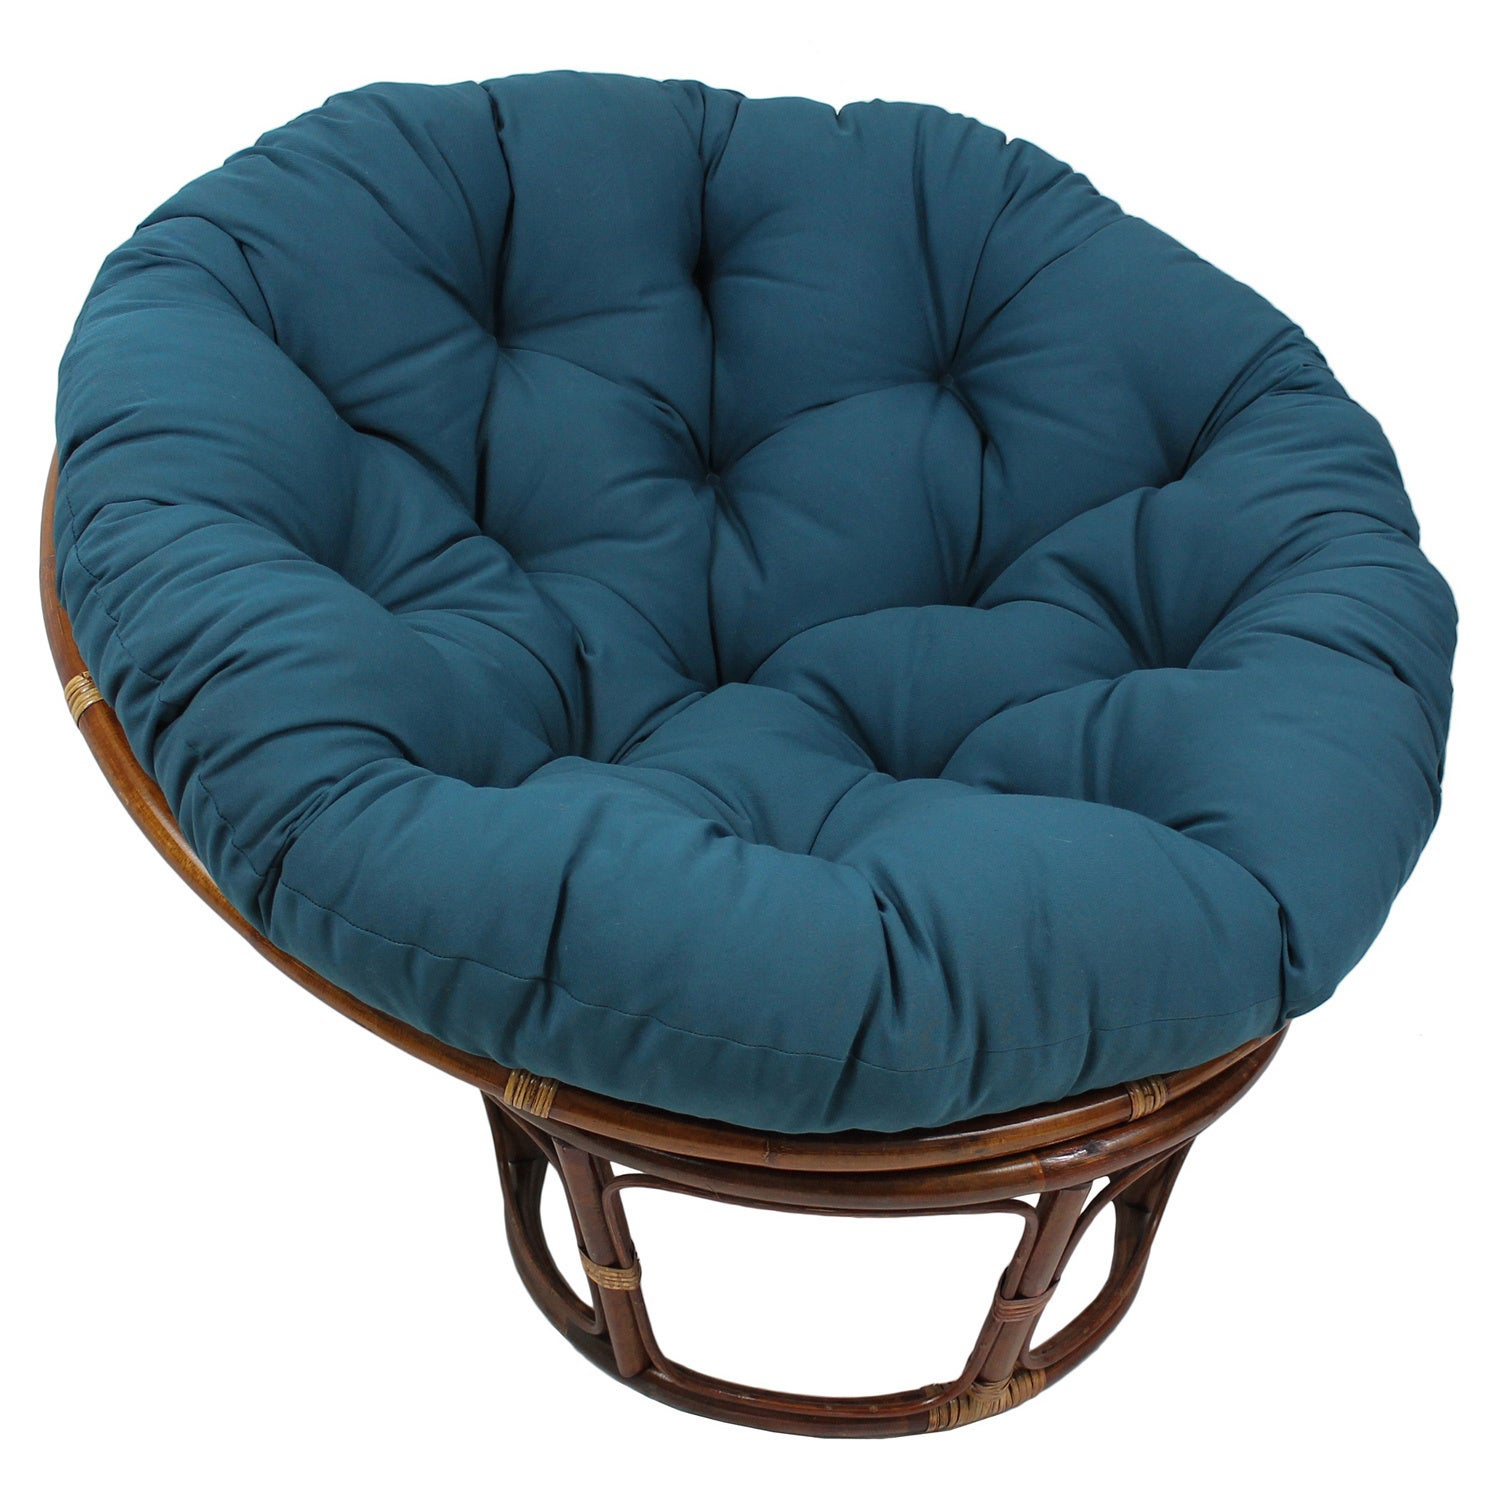 Superieur Shop Blazing Needles 48 Inch Papasan Cushion   On Sale   Free Shipping  Today   Overstock.com   8821990